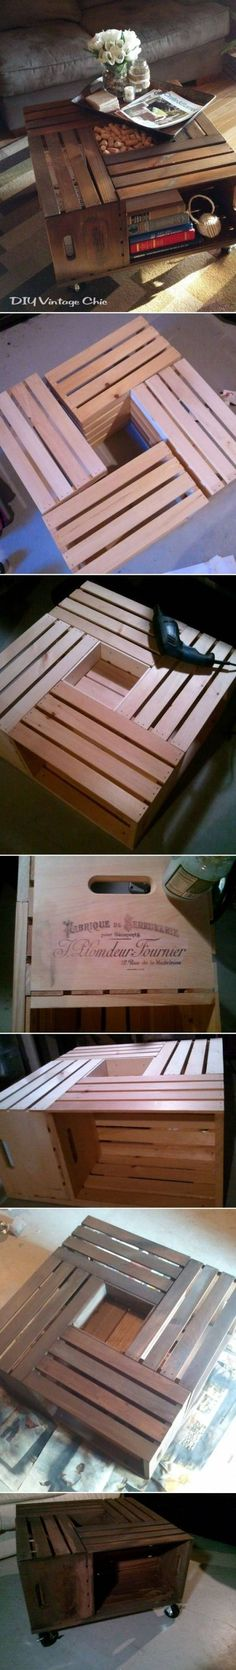 How to make custom designer Wine table with shipping crates step by step DIY tutorial instructions / How To Instructions